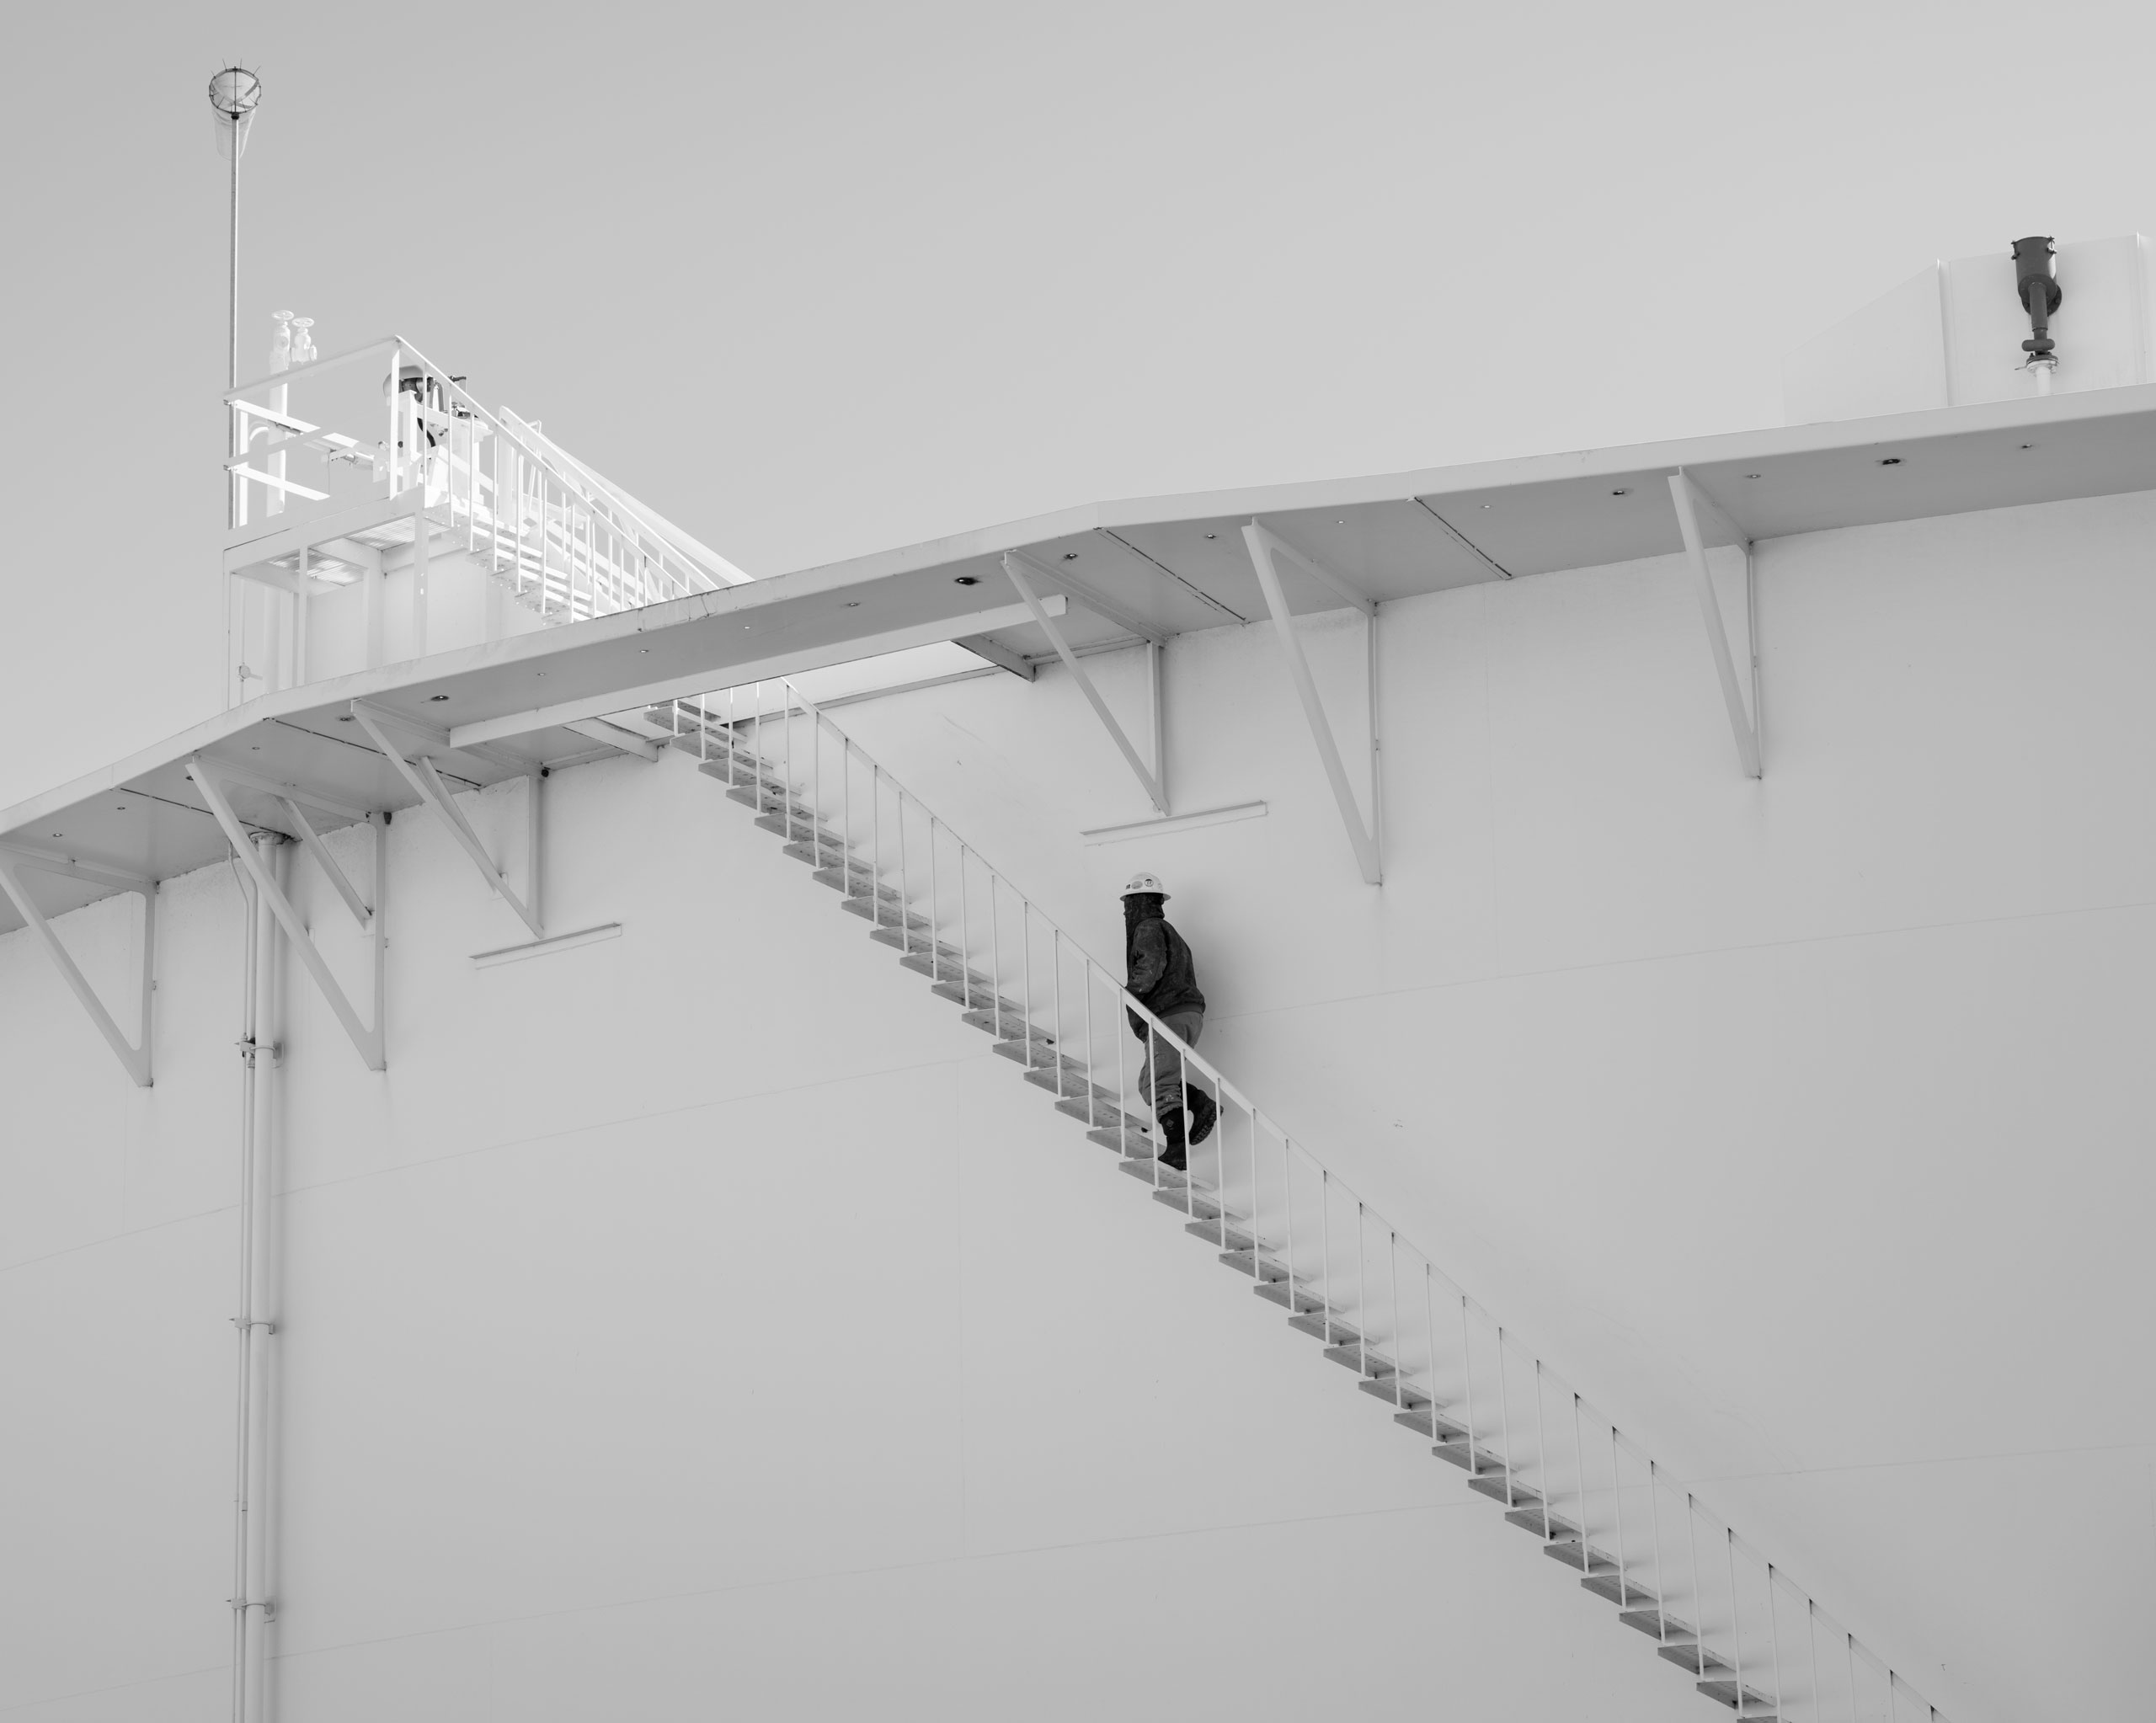 A worker walks up stairs on an oil storage tank, Cushing, Oklahoma. Cushing is a vital transshipment point with many intersecting pipelines, storage facilities and easy access to refiners and suppliers. Crude oil flows inbound to Cushing from all directions and outbound through dozens of pipelines. It is one of the largest oil reserves in the world.